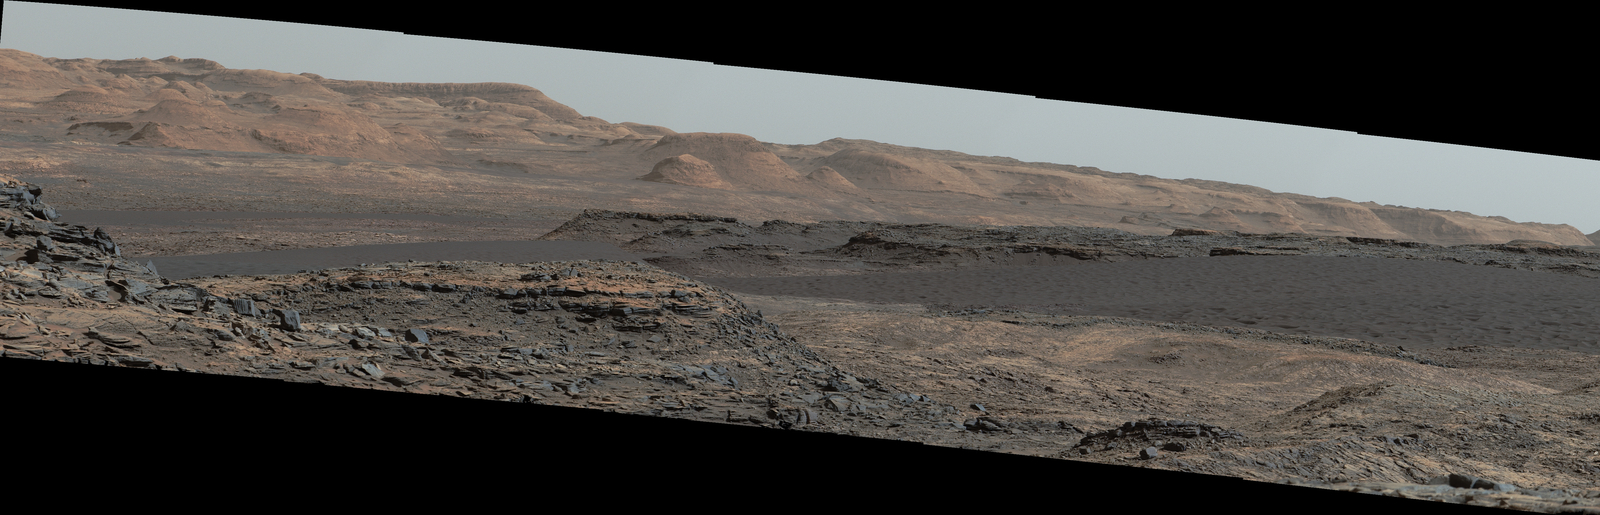 This Sept. 25, 2015, view from the Mast Camera on NASA's Curiosity Mars rover shows a dark sand dune in the middle distance. The rover's examination of dunes on the way toward higher layers of Mount Sharp will be the first in-place study of an active sand dune anywhere other than Earth.